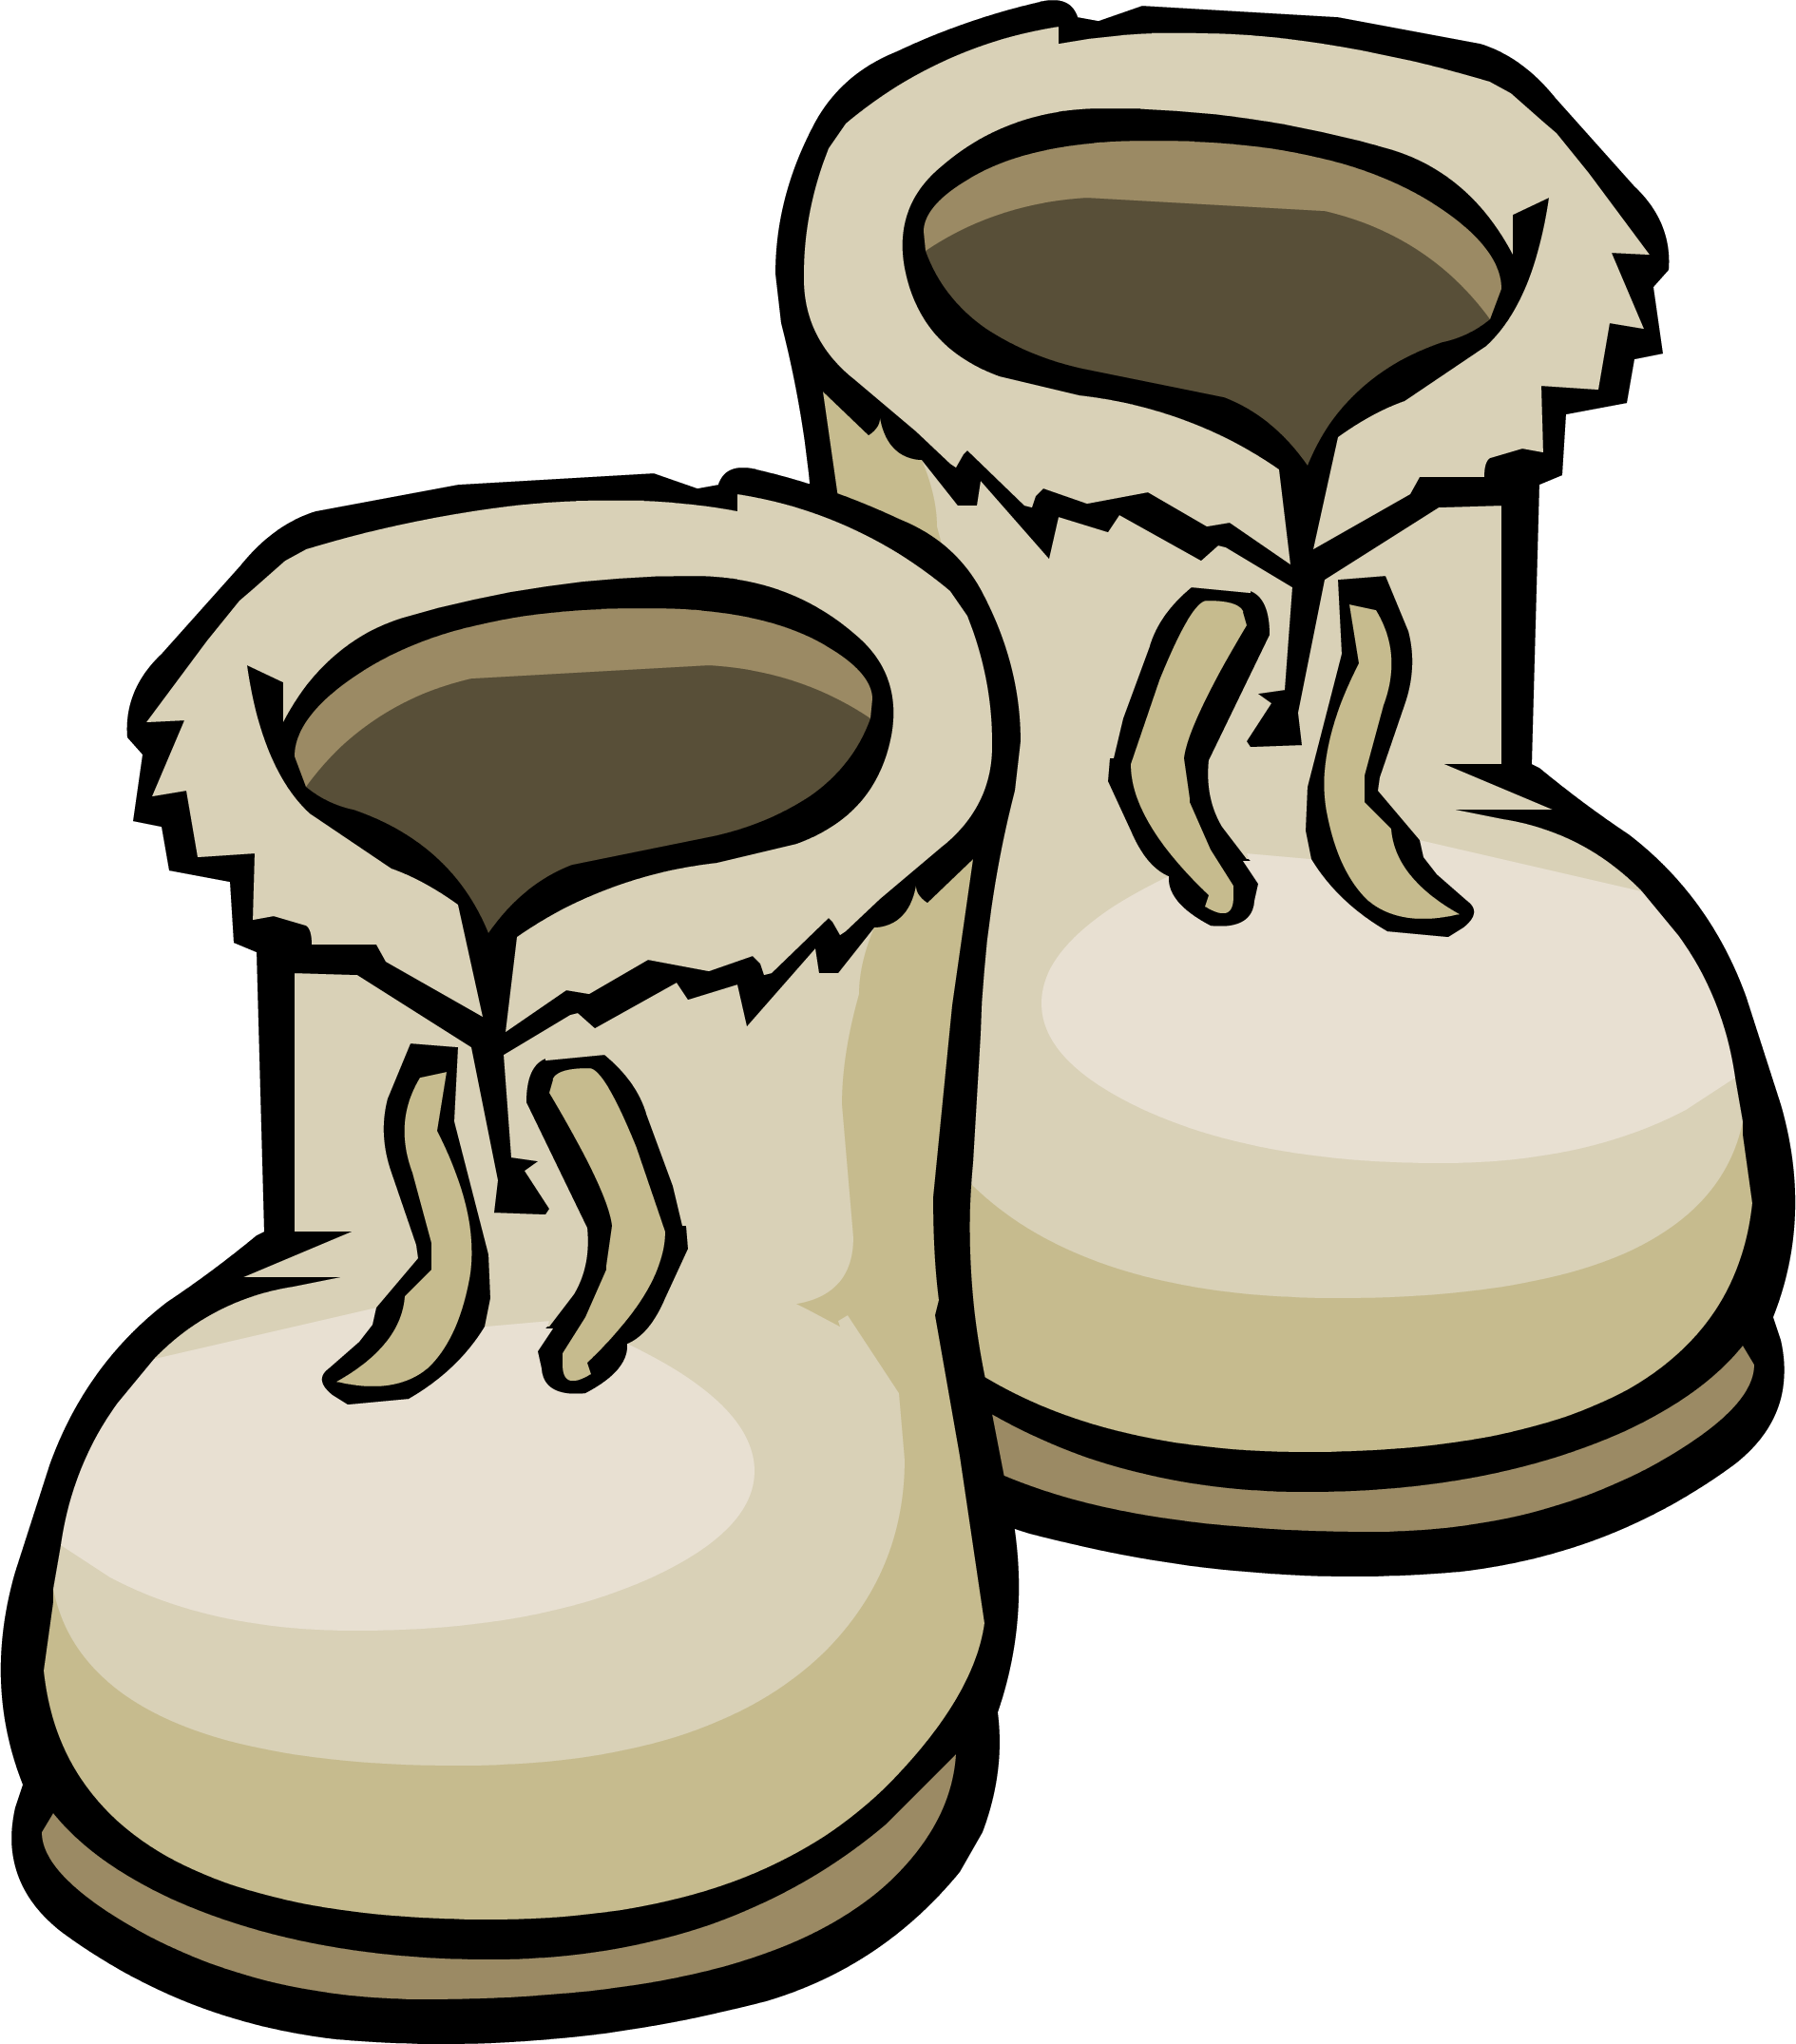 Boots club penguin wiki. Winter clipart boot